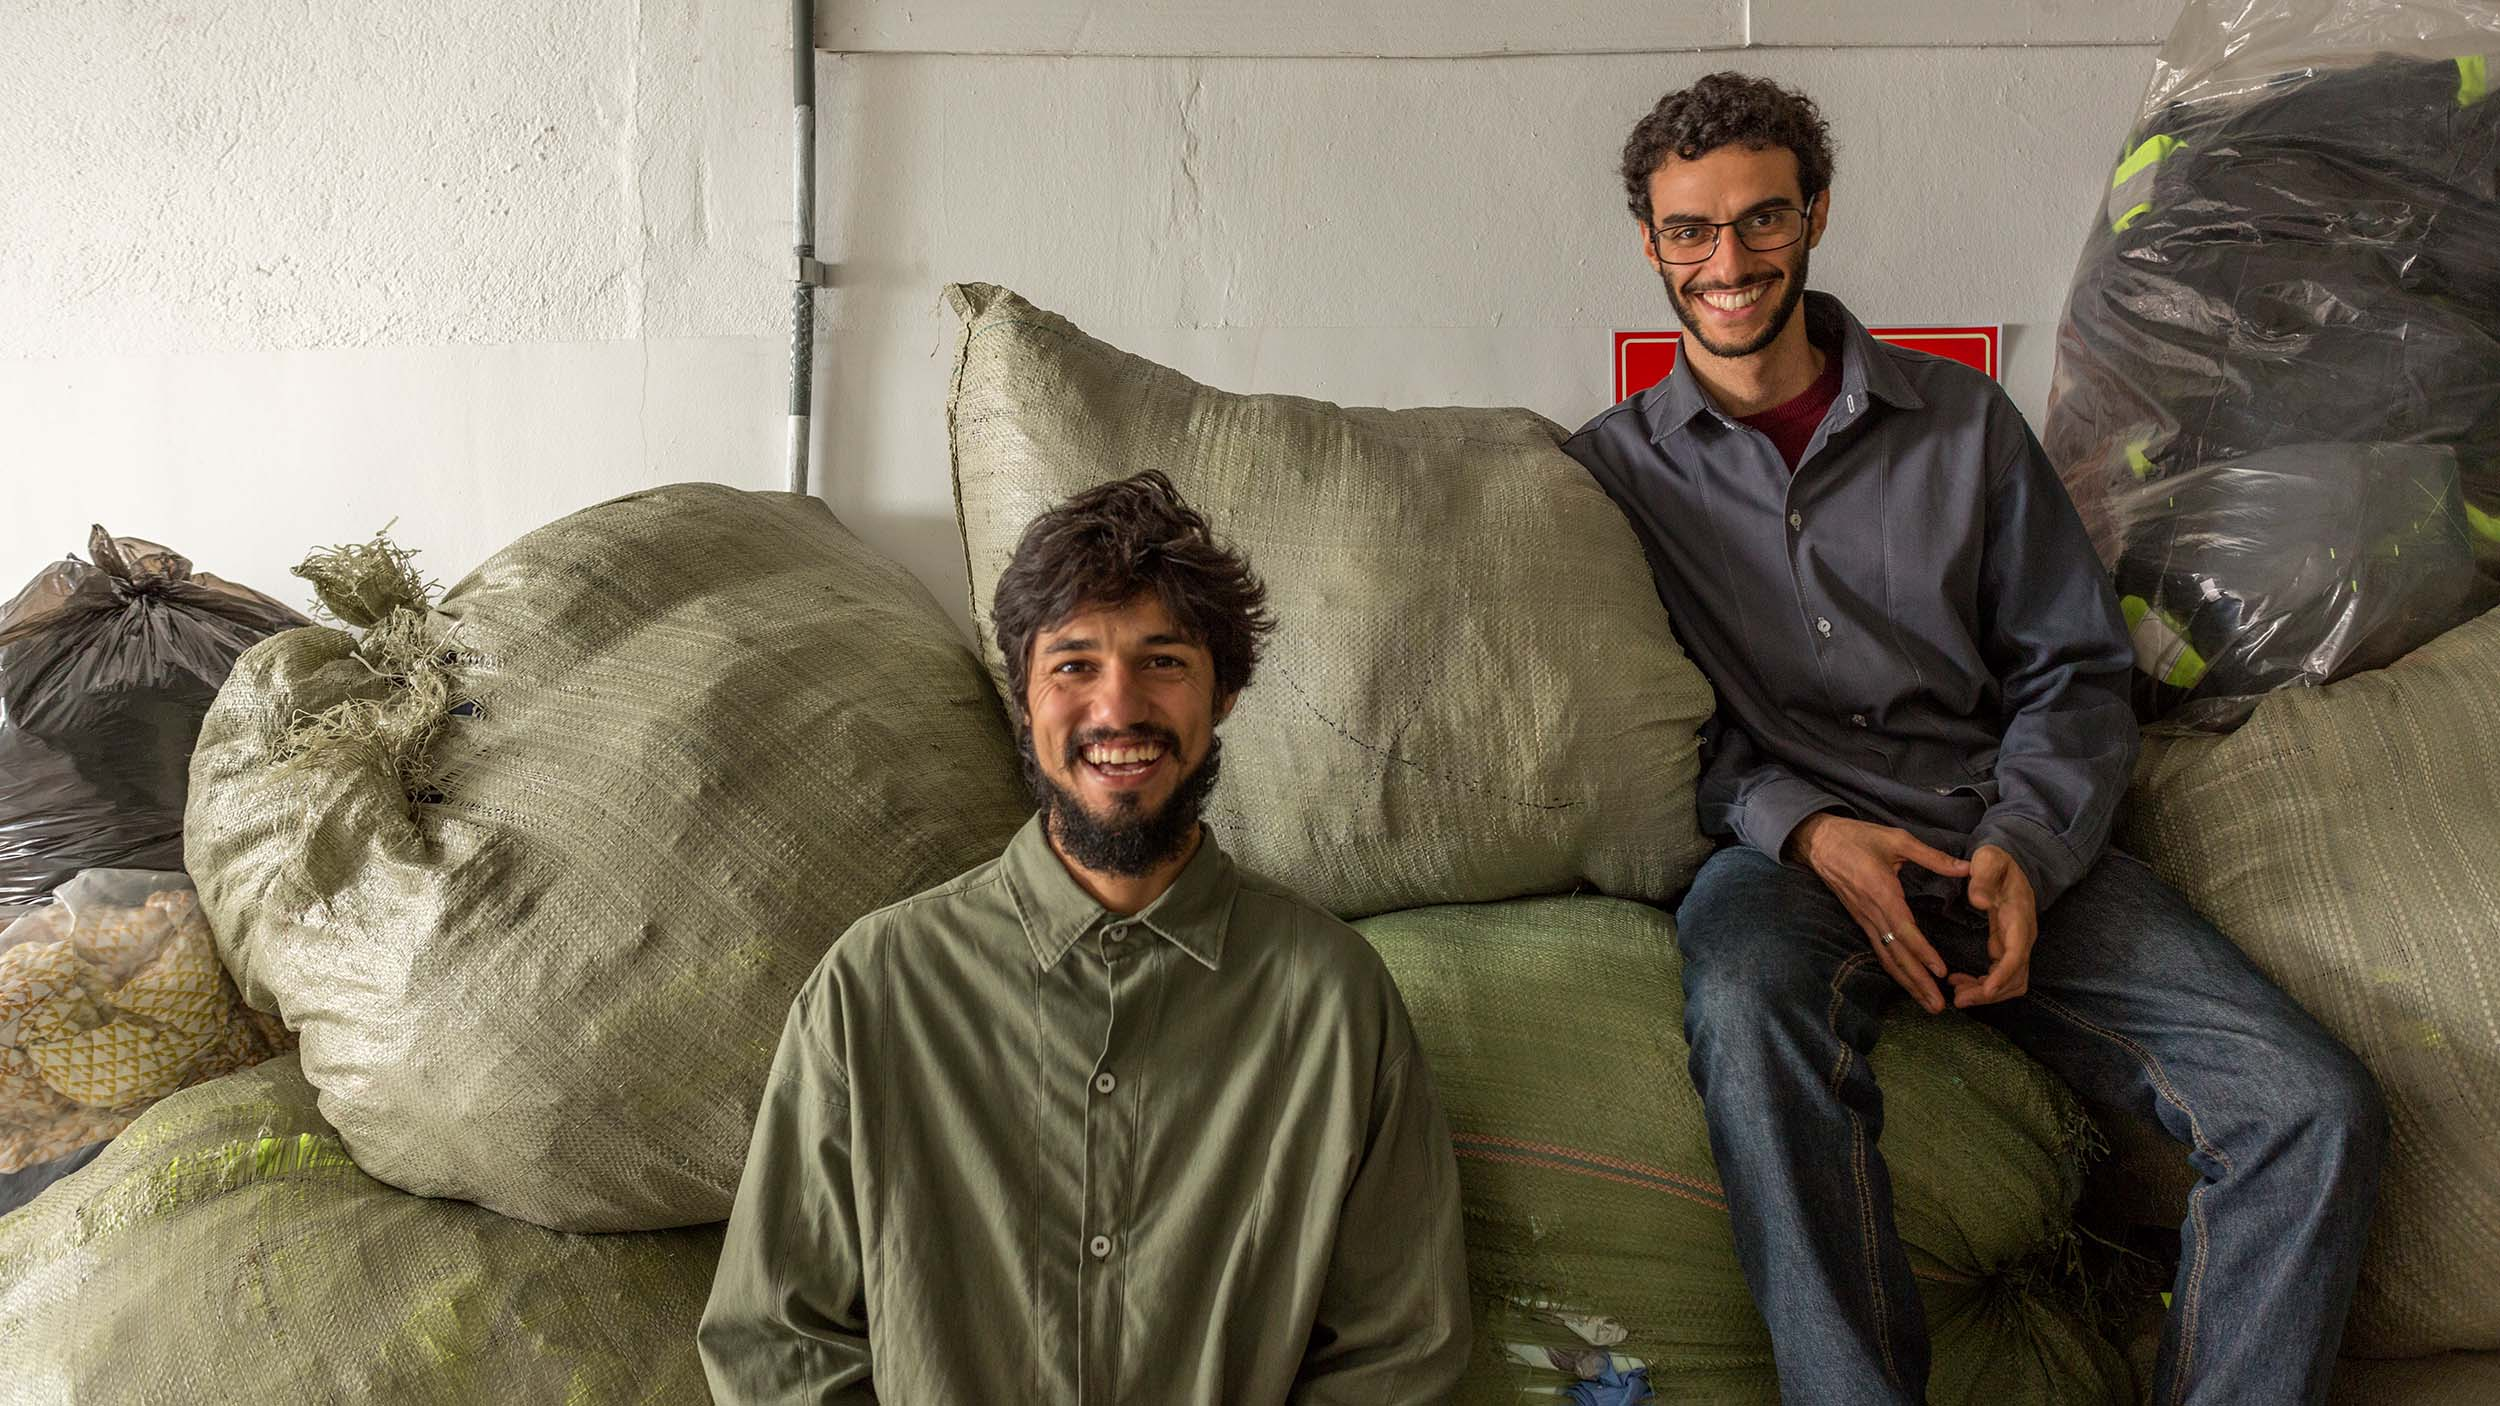 Retalhar Founders Lucas Corvacho (L) and Jonah Lessa (R) met while working in the impact reduction department at Lutha Uniformes, where they identified a market need for recycling used uniforms in Brazil.